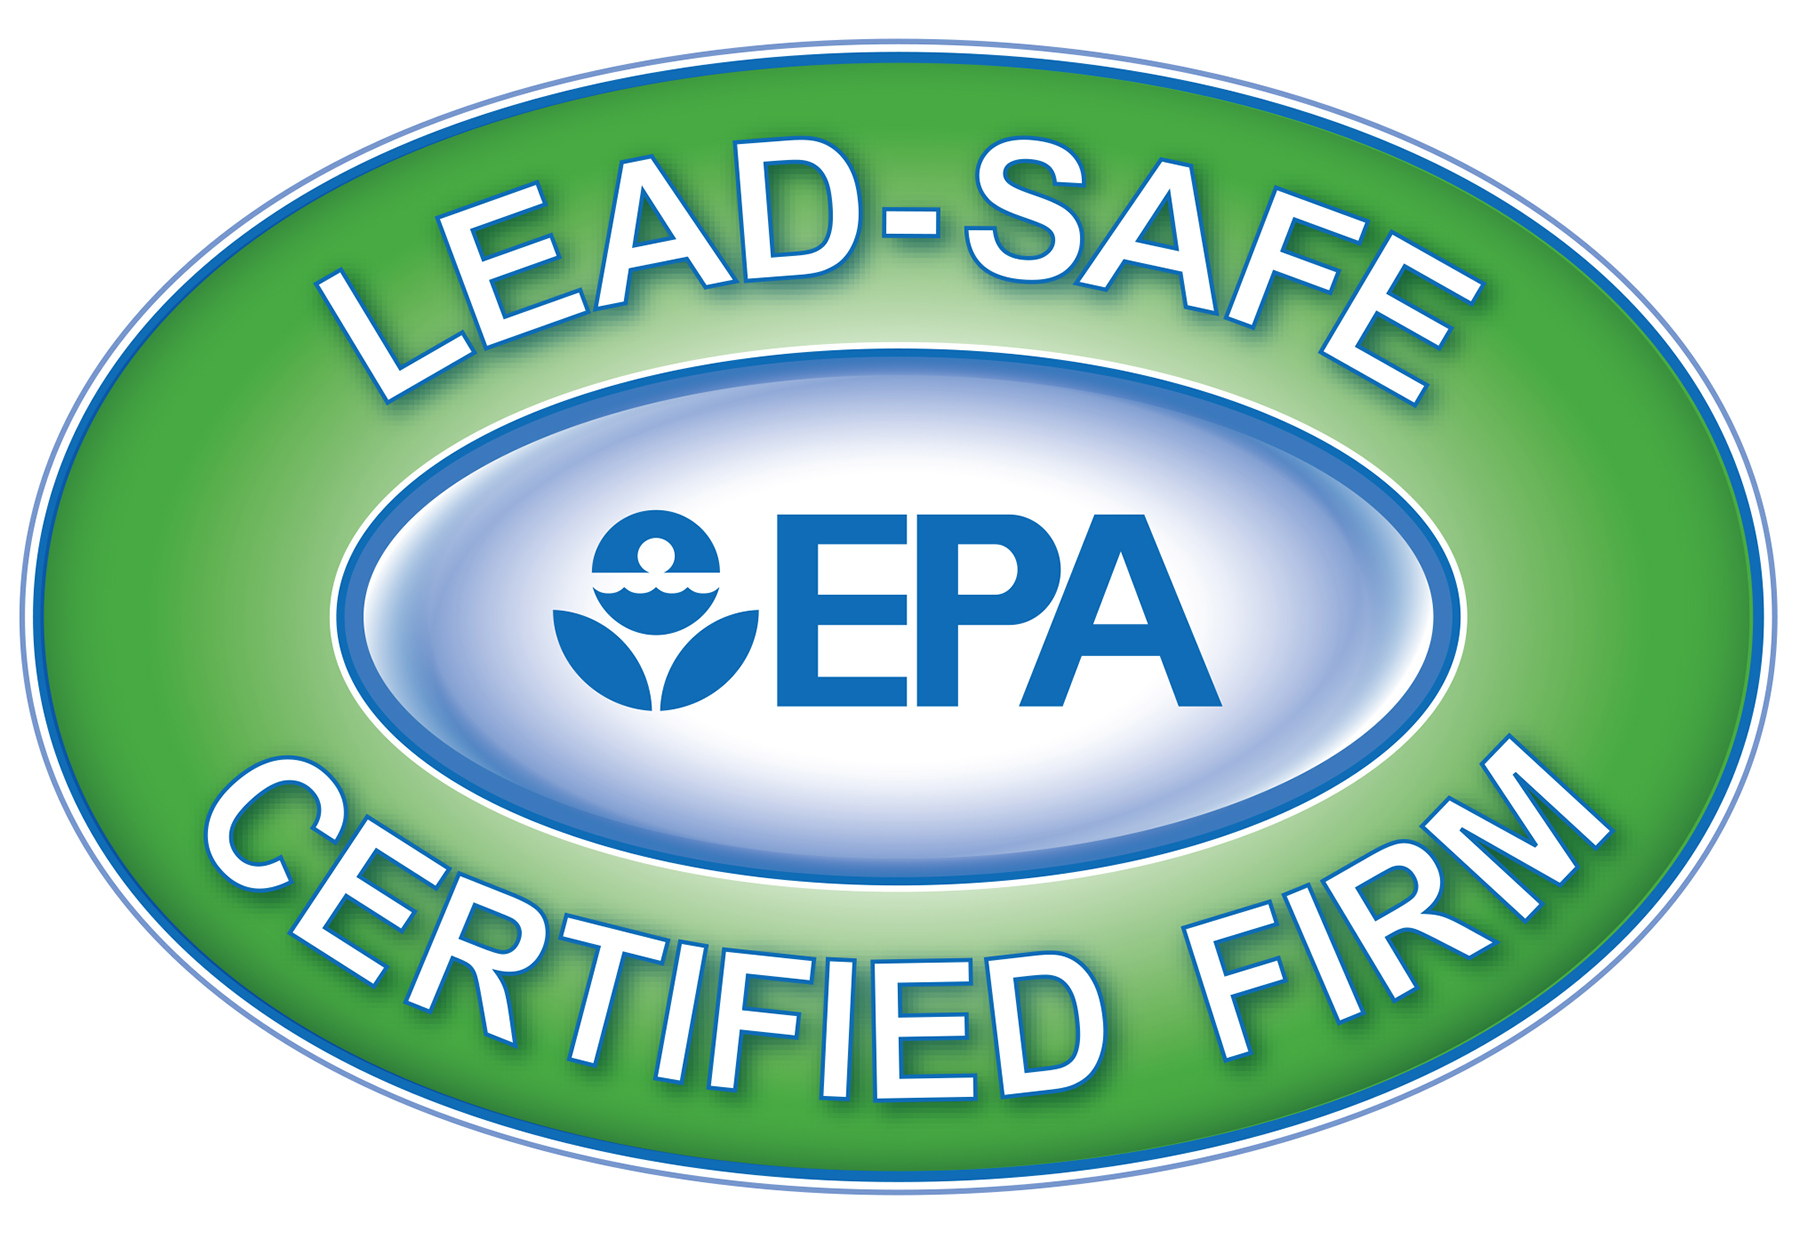 Arrow Renovation is an EPA Lead-Safe Certified Firm